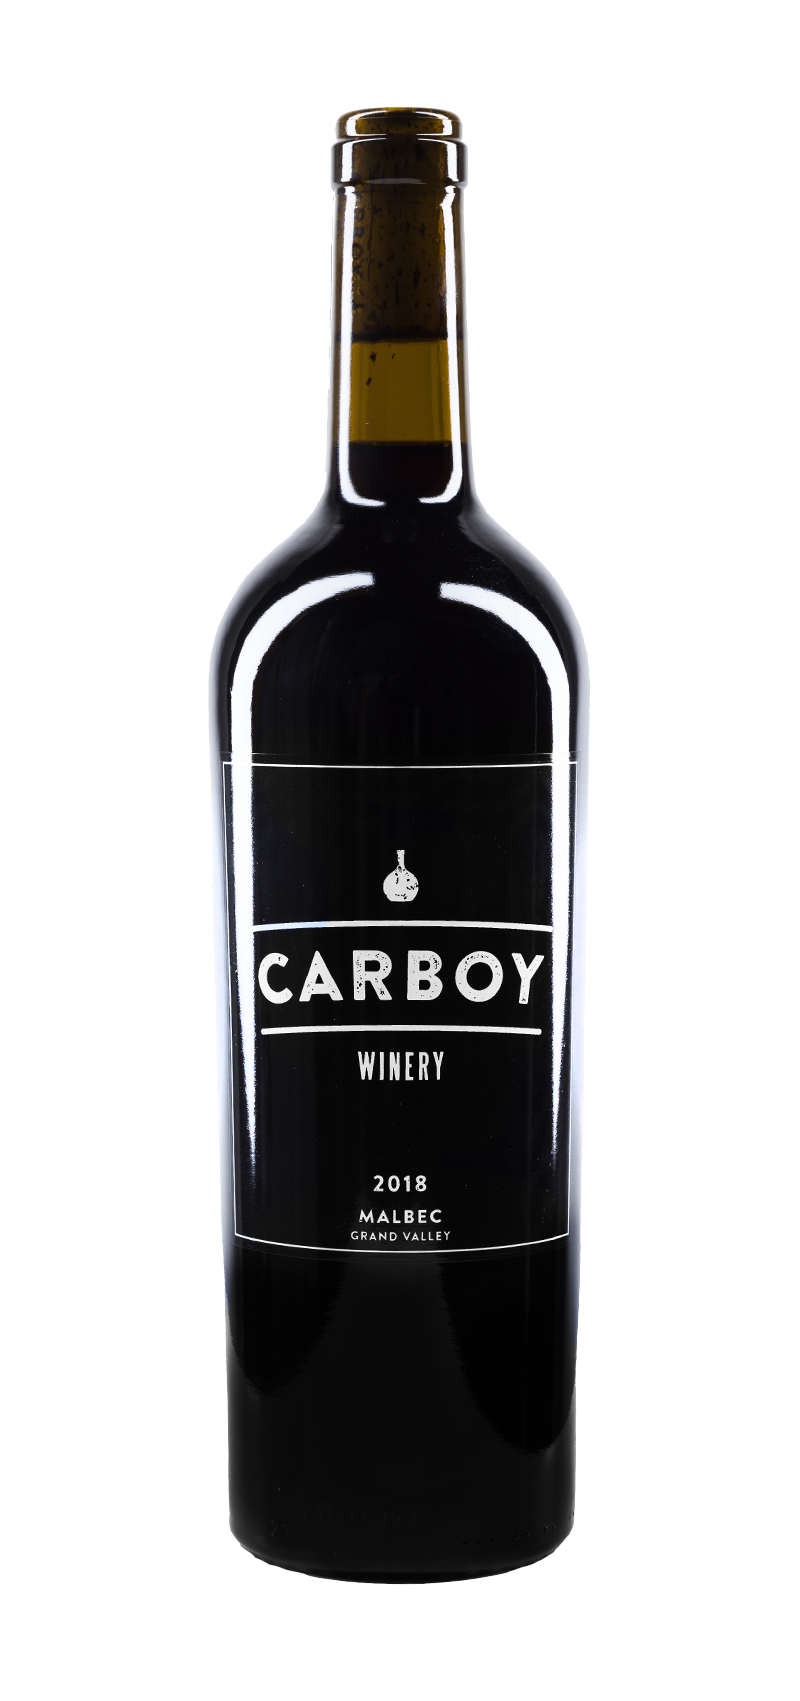 Bottle of Carboy Winery's Malbec wine.